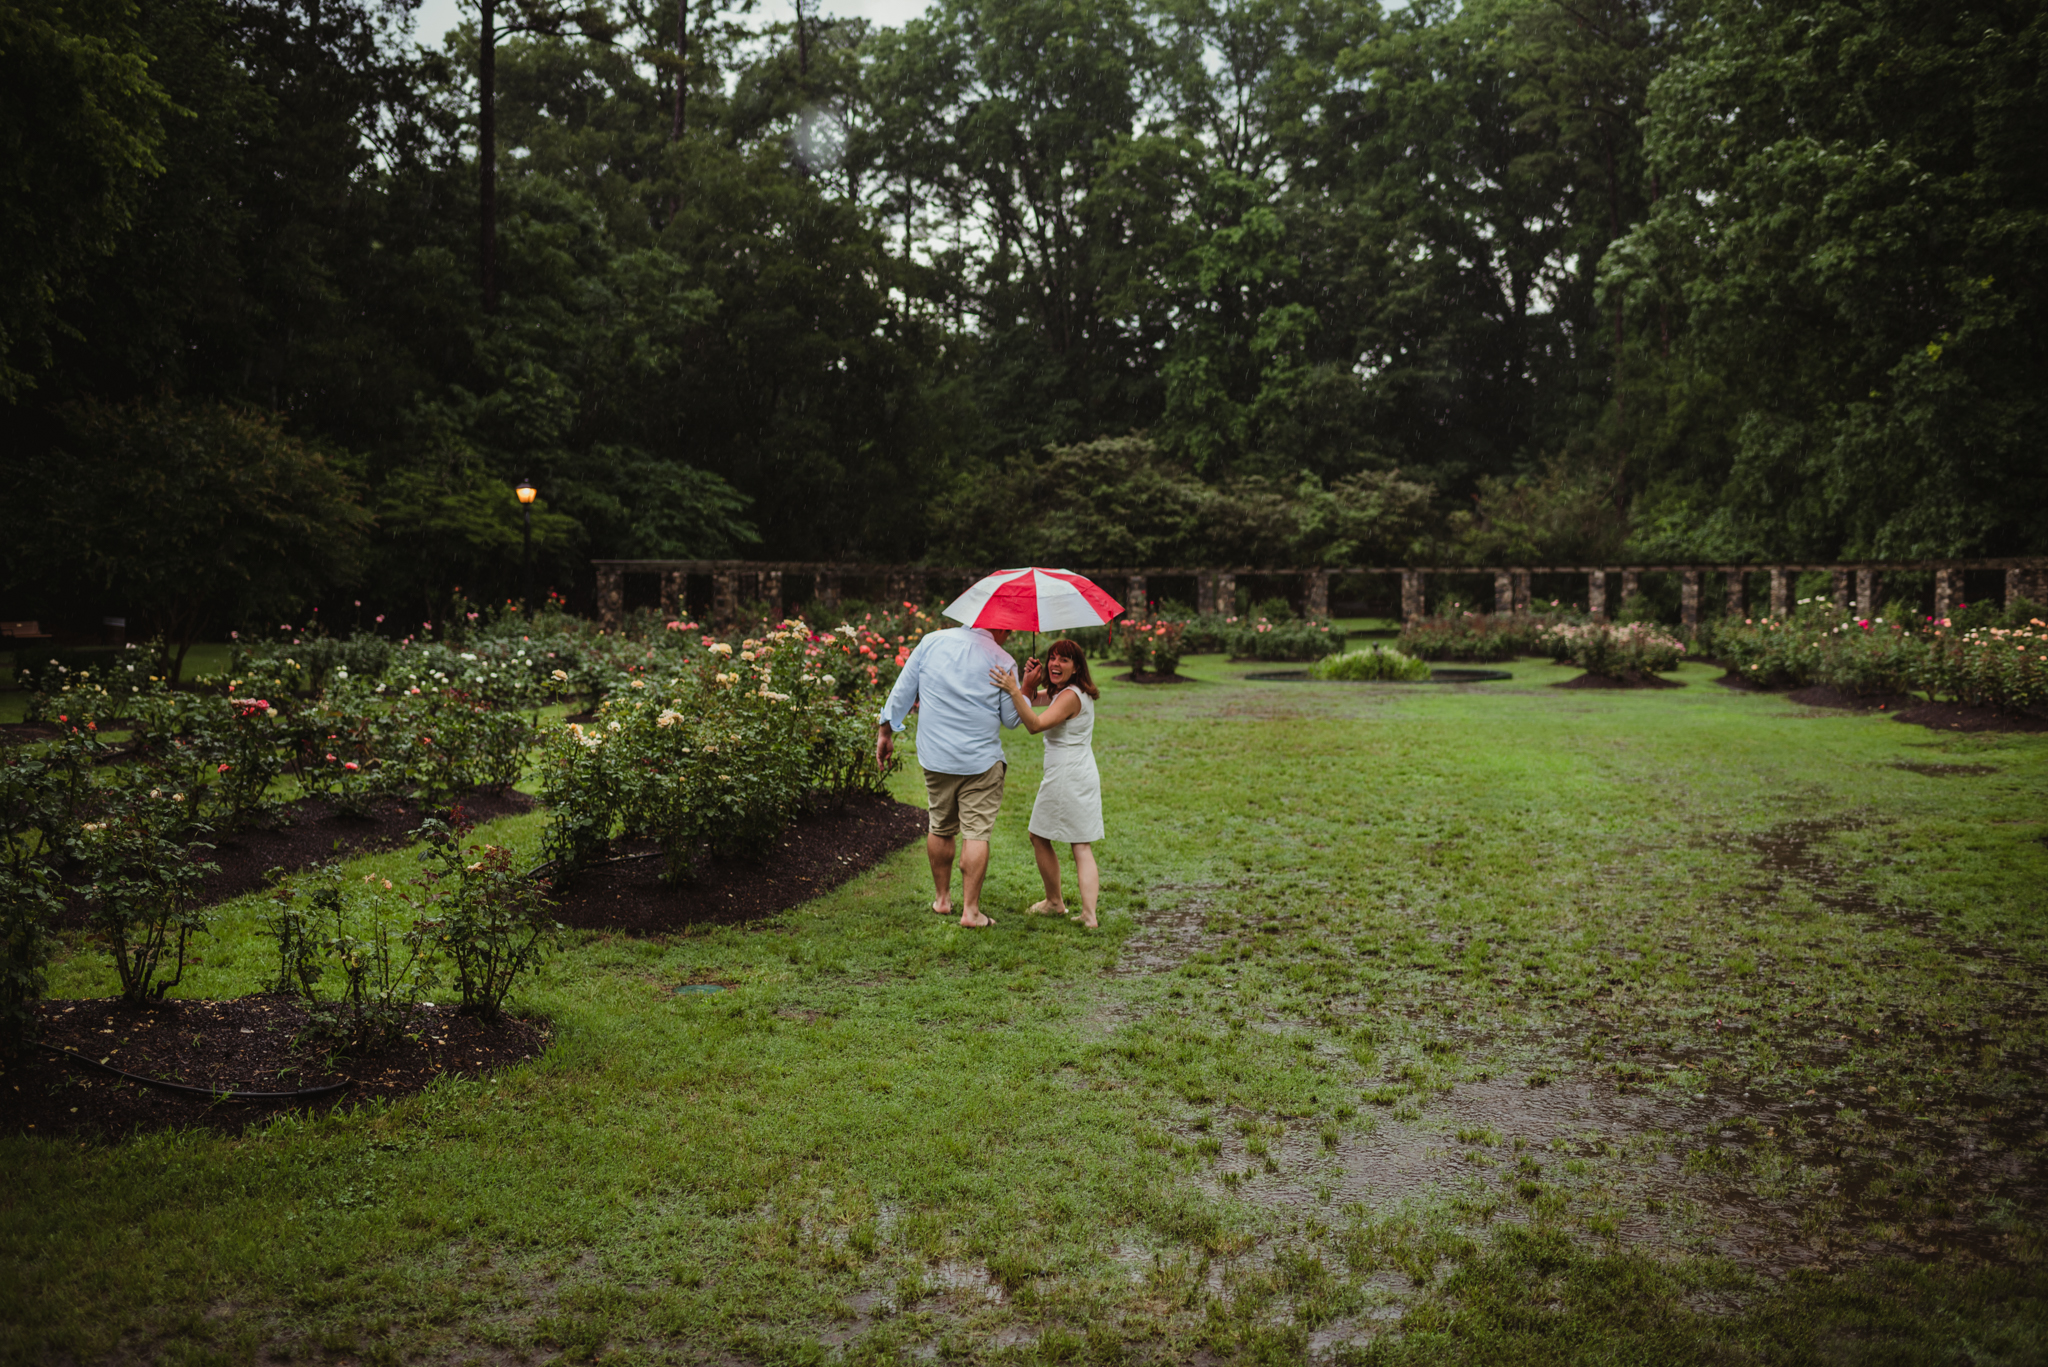 The bride and groom to be go under the umbrella during the rainstorm in Raleigh, during their engagement session with Rose Trail Images.